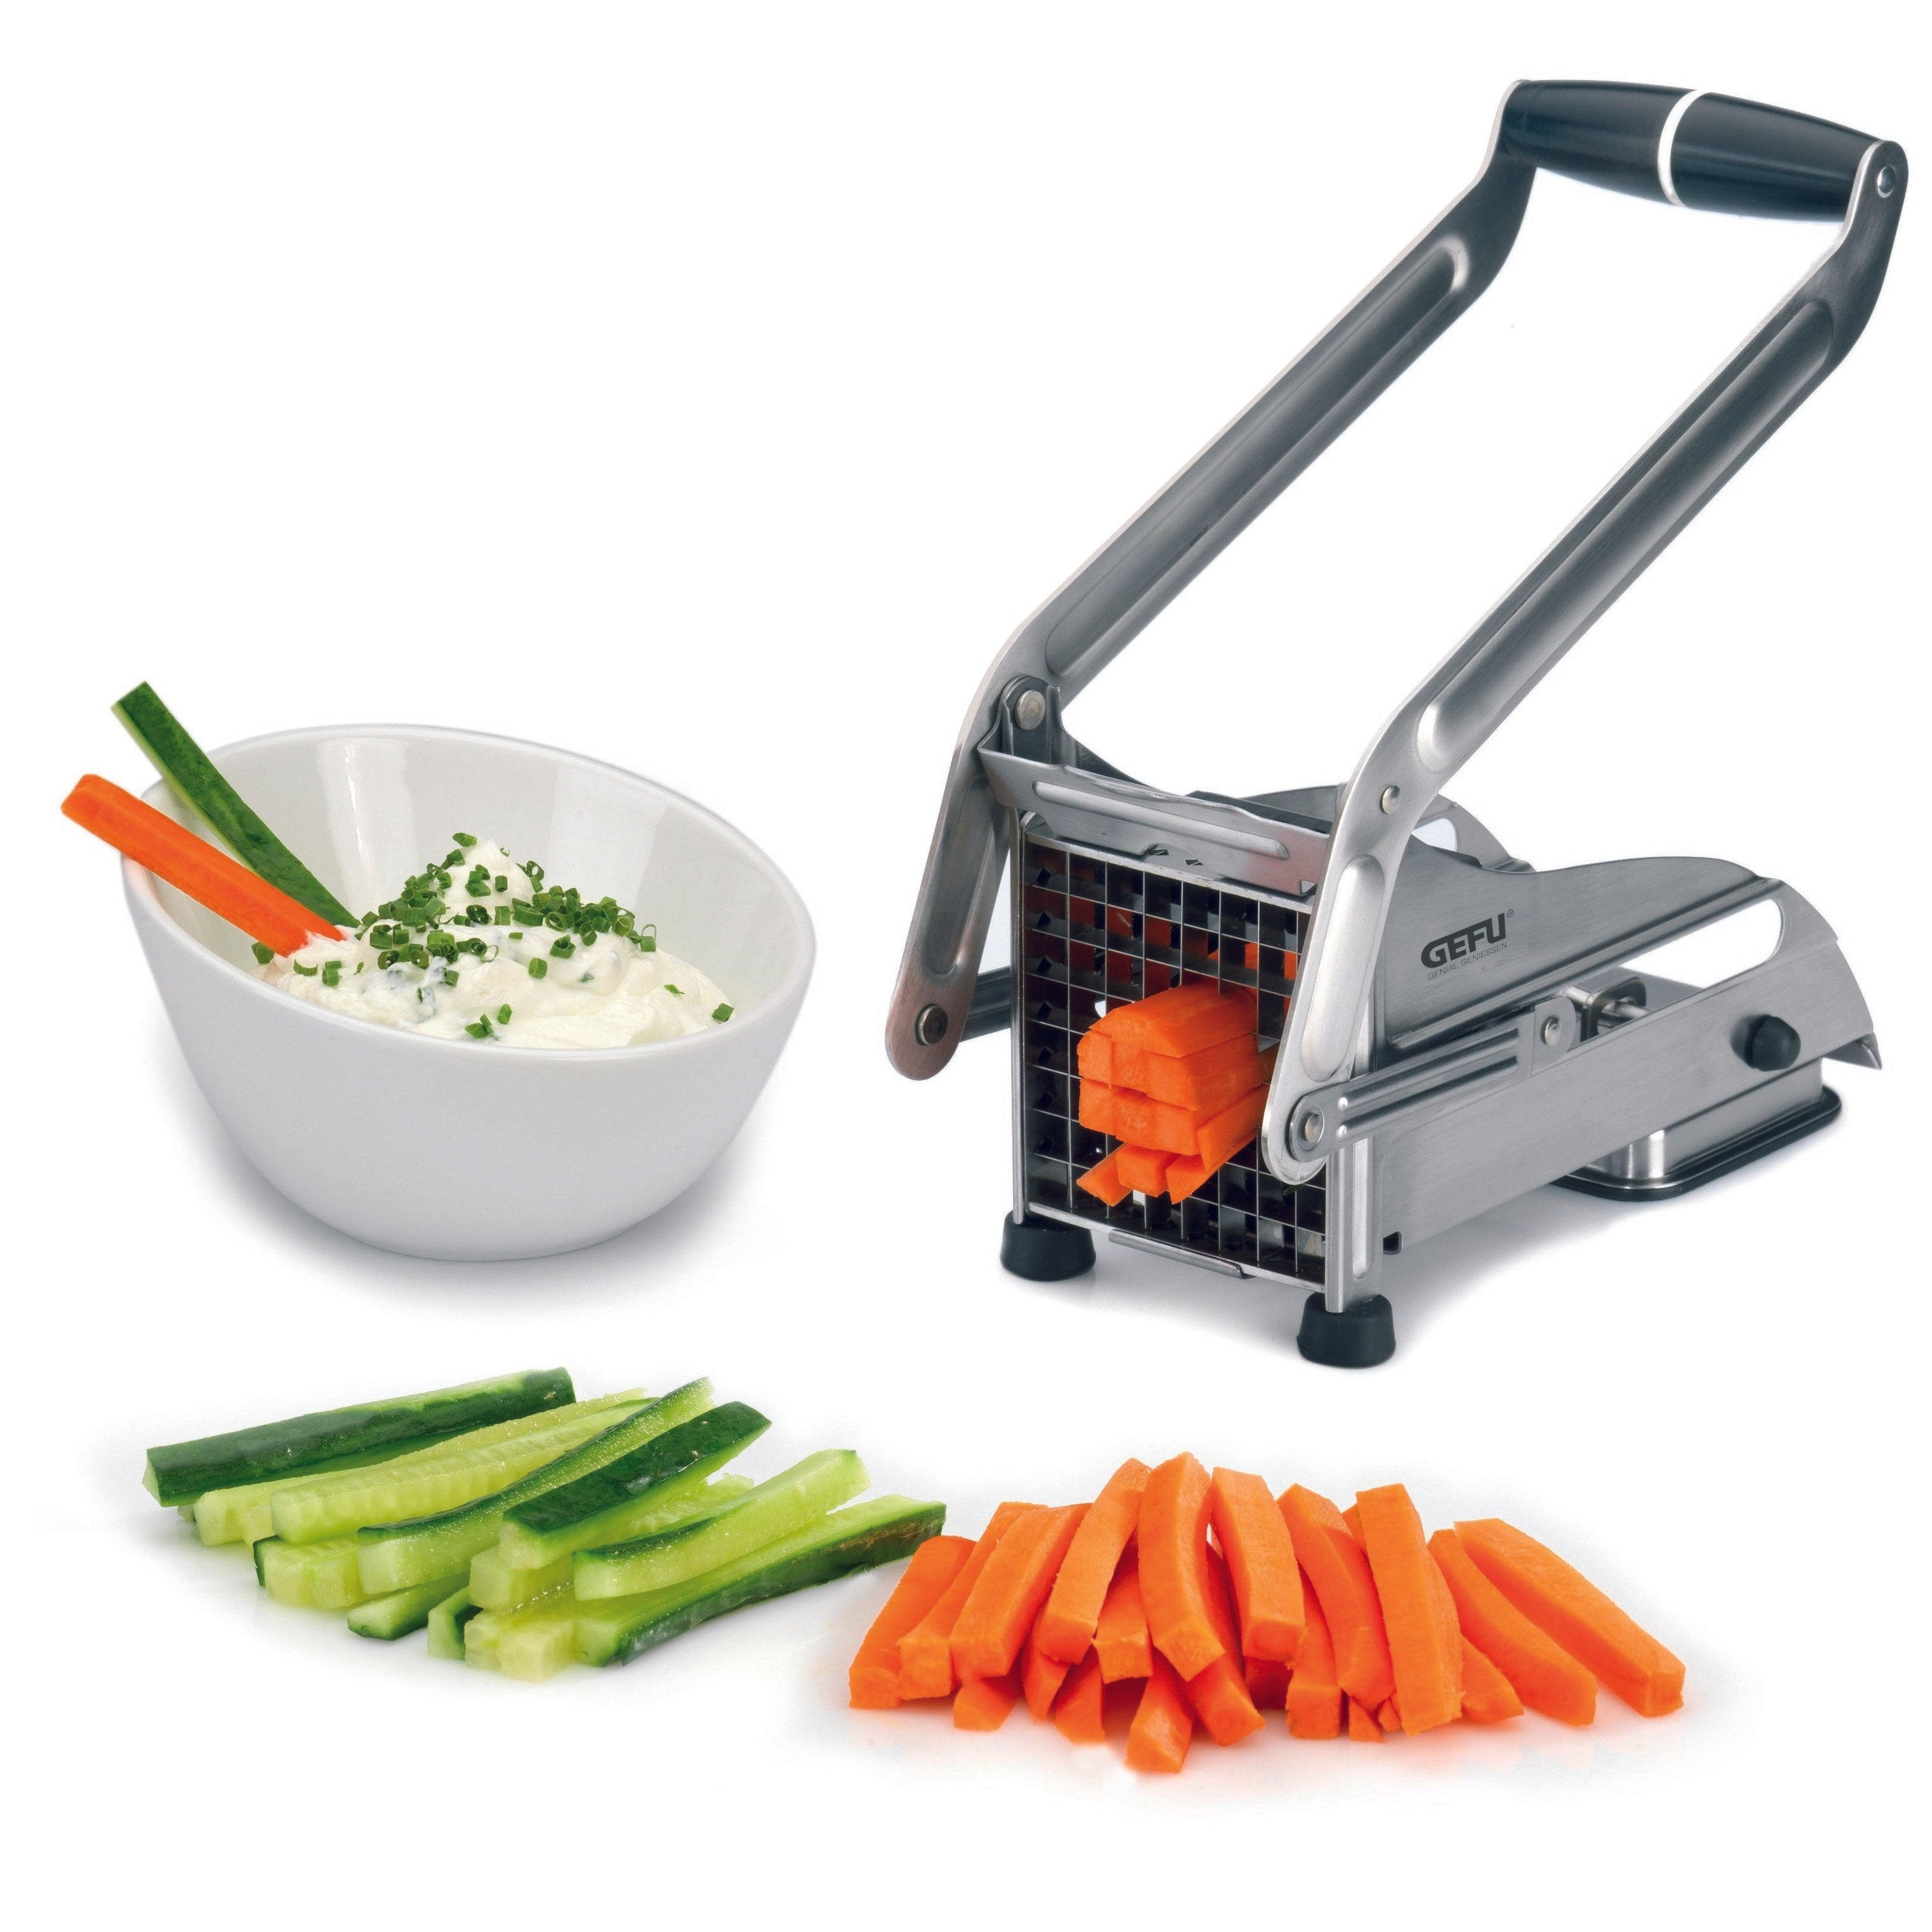 Slicing Grid for Vegetables - CUTTO